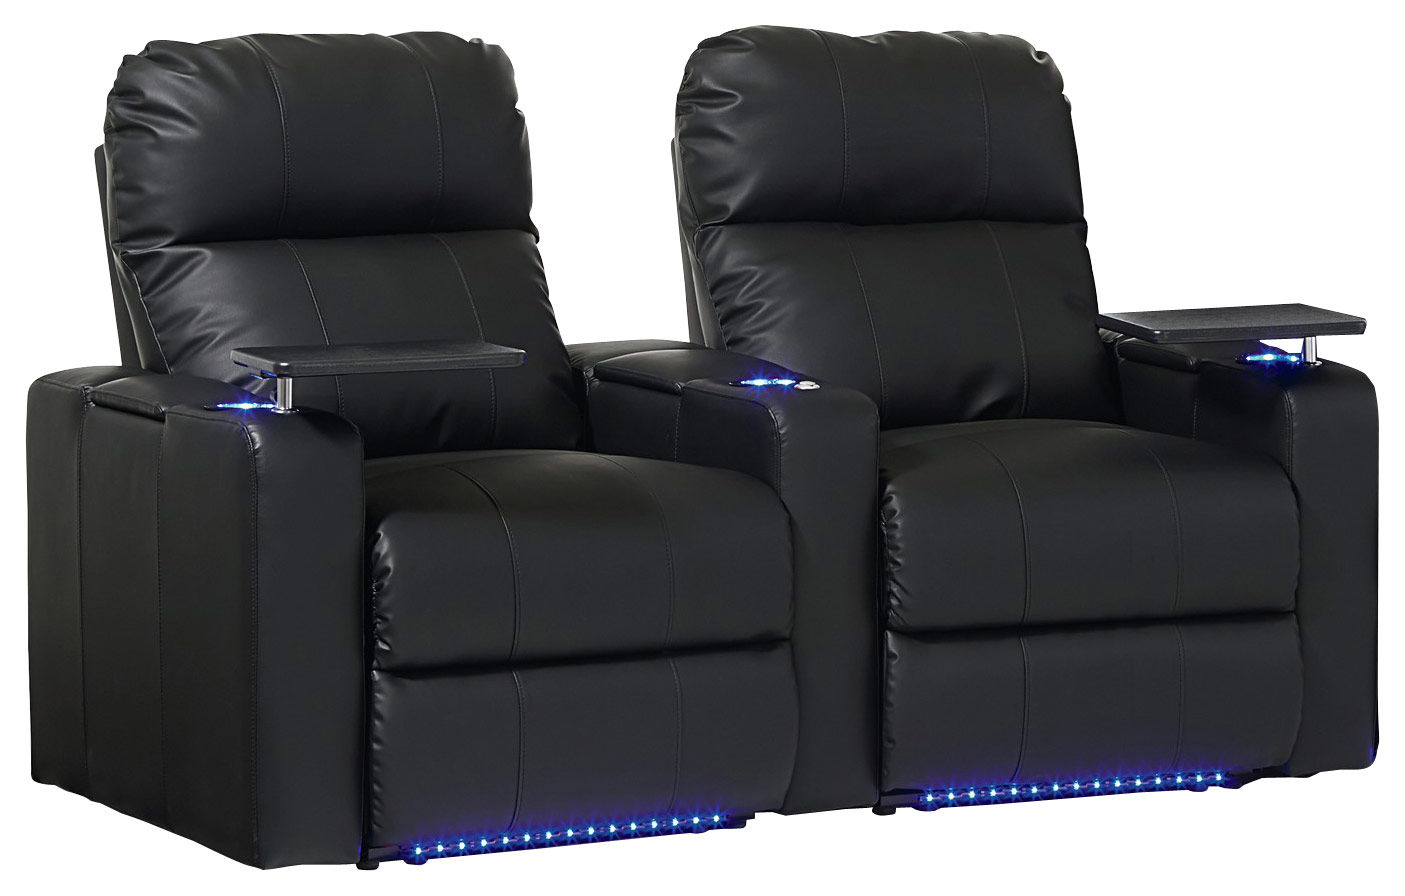 theater chairs best buy hanging chair ceiling hook octane seating turbo xl700 2 seat straight power recline